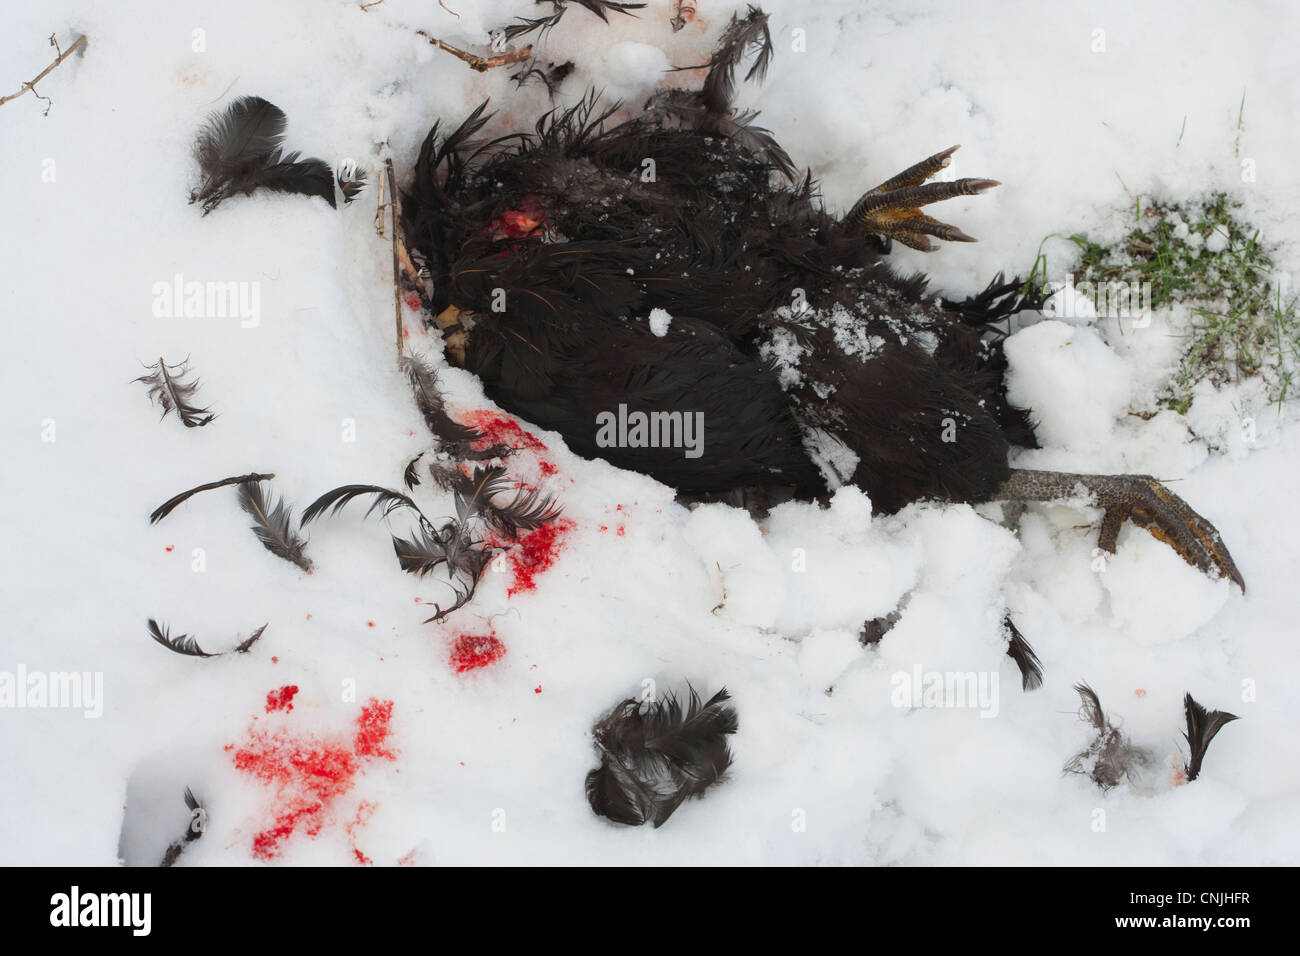 Dead chicken in the snow after being attacked by a fox - Stock Image